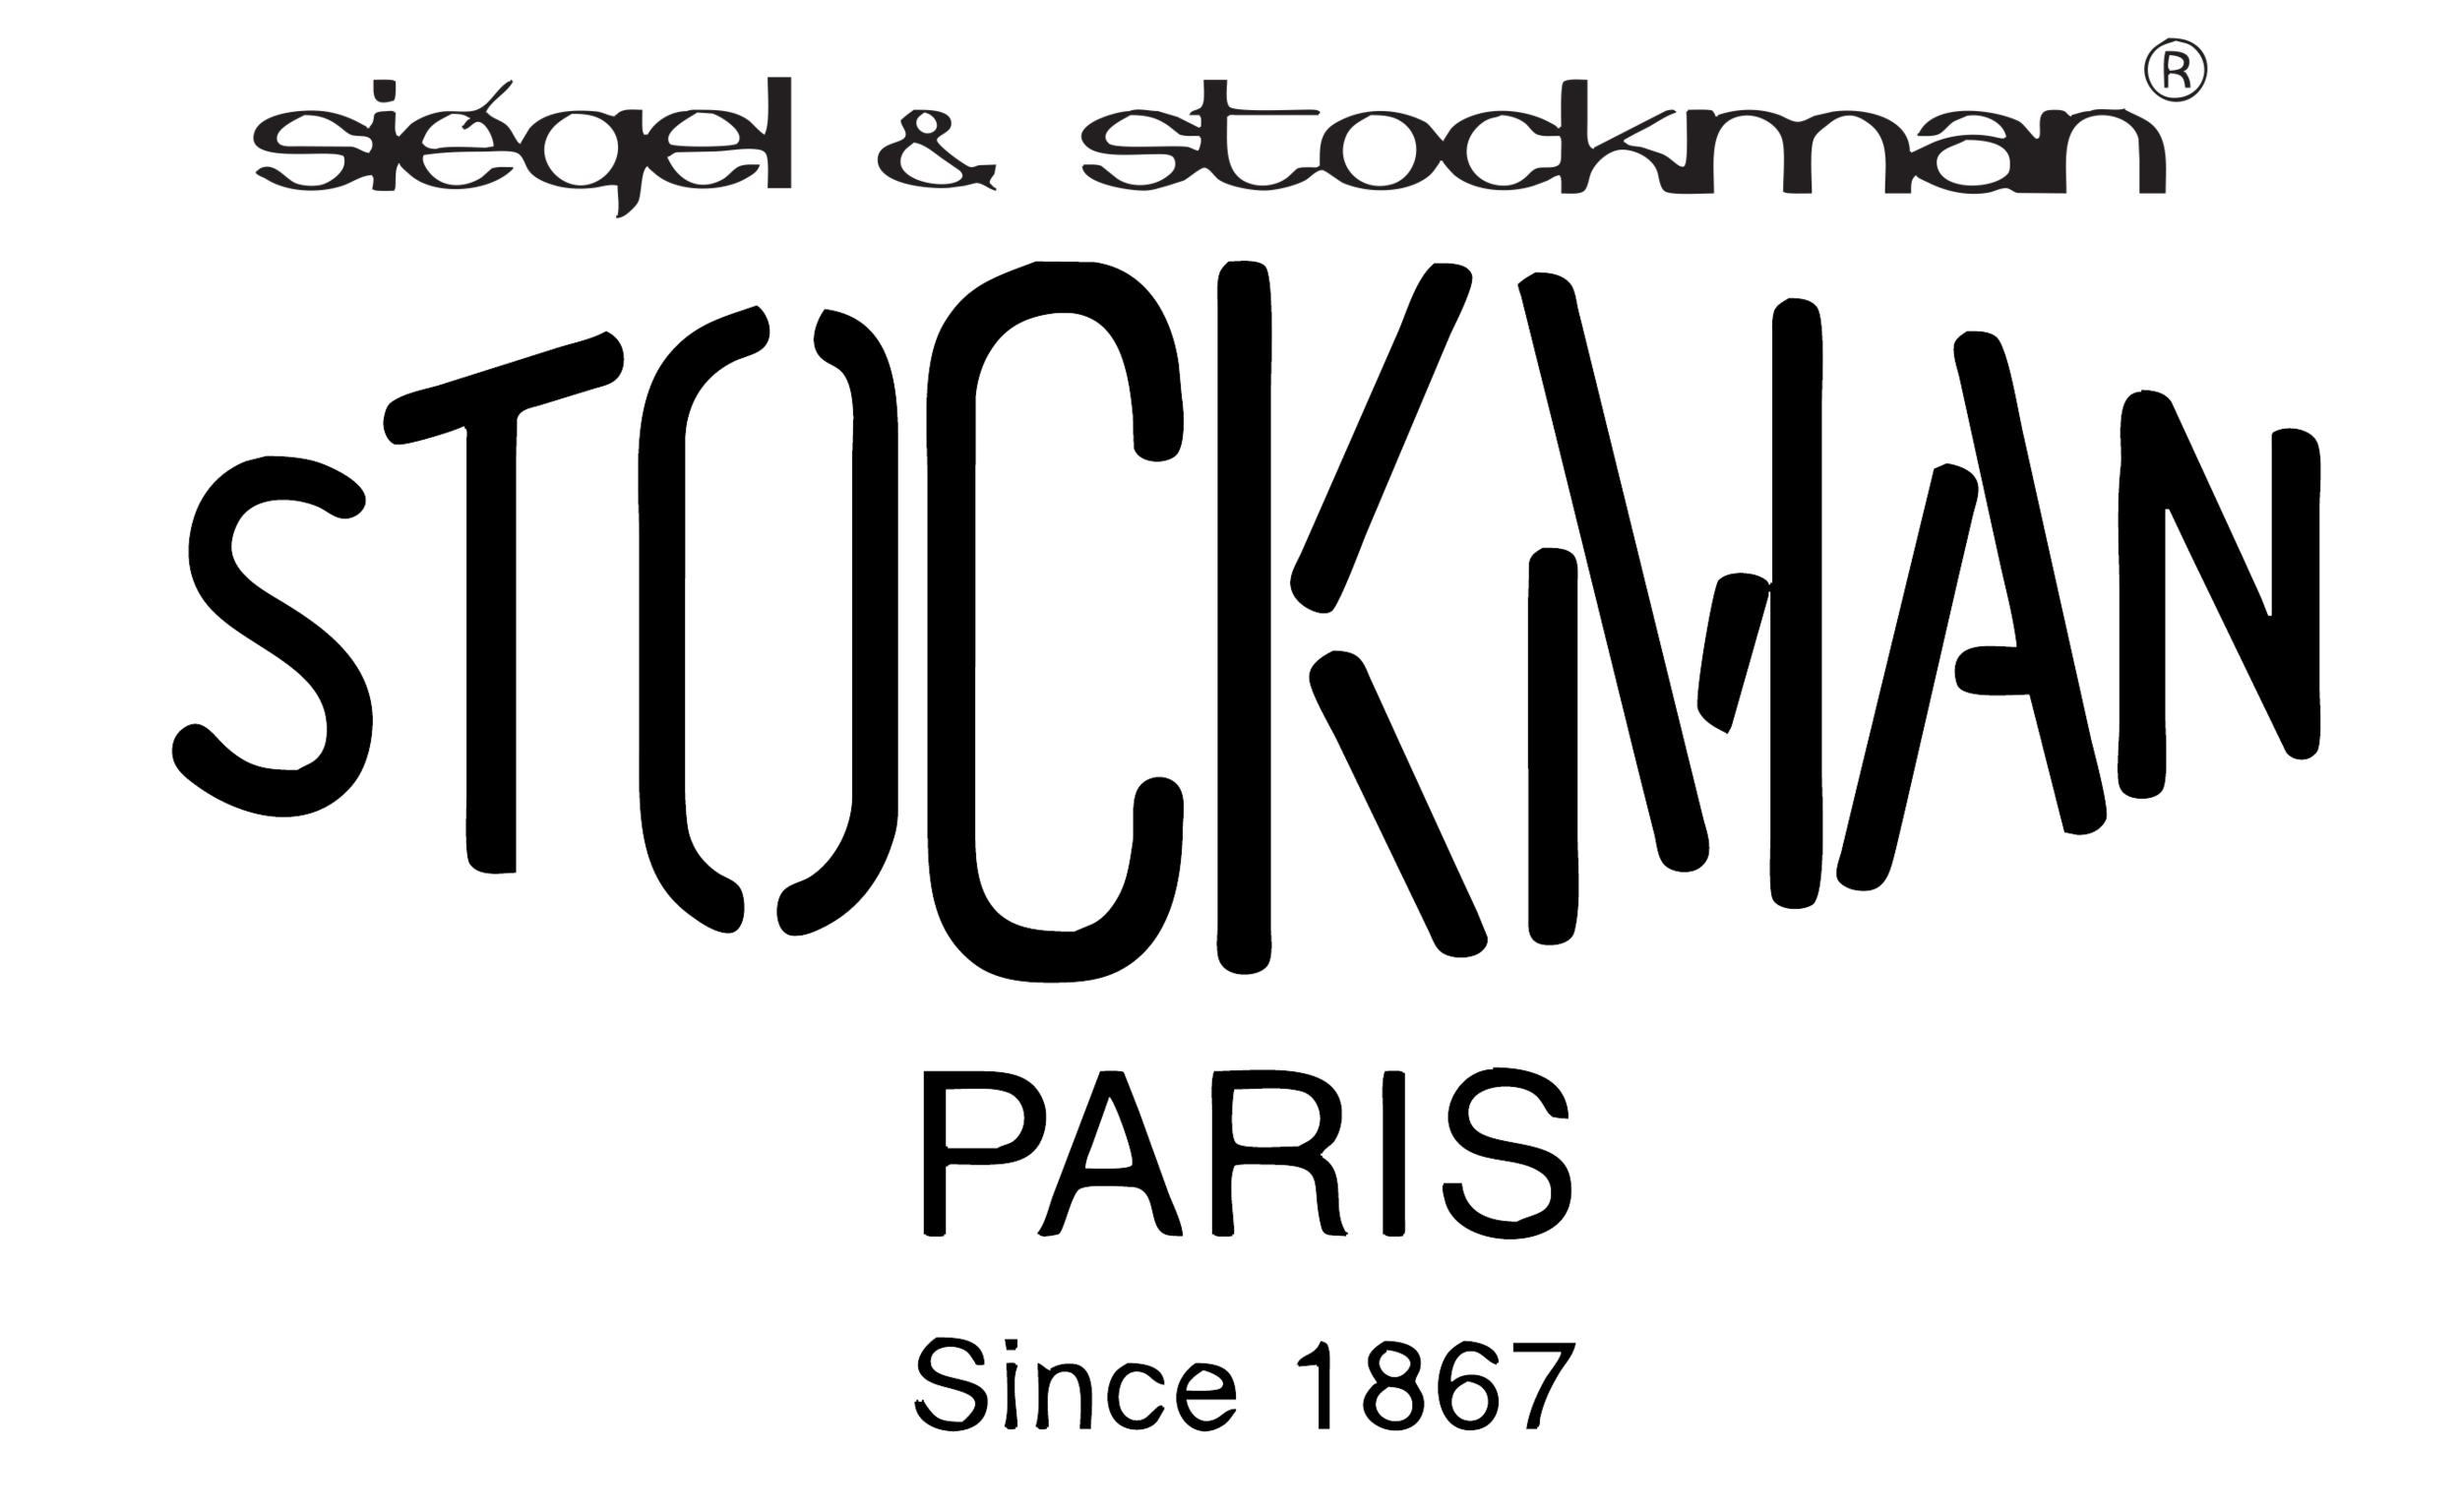 logo stockman newest smaller.png